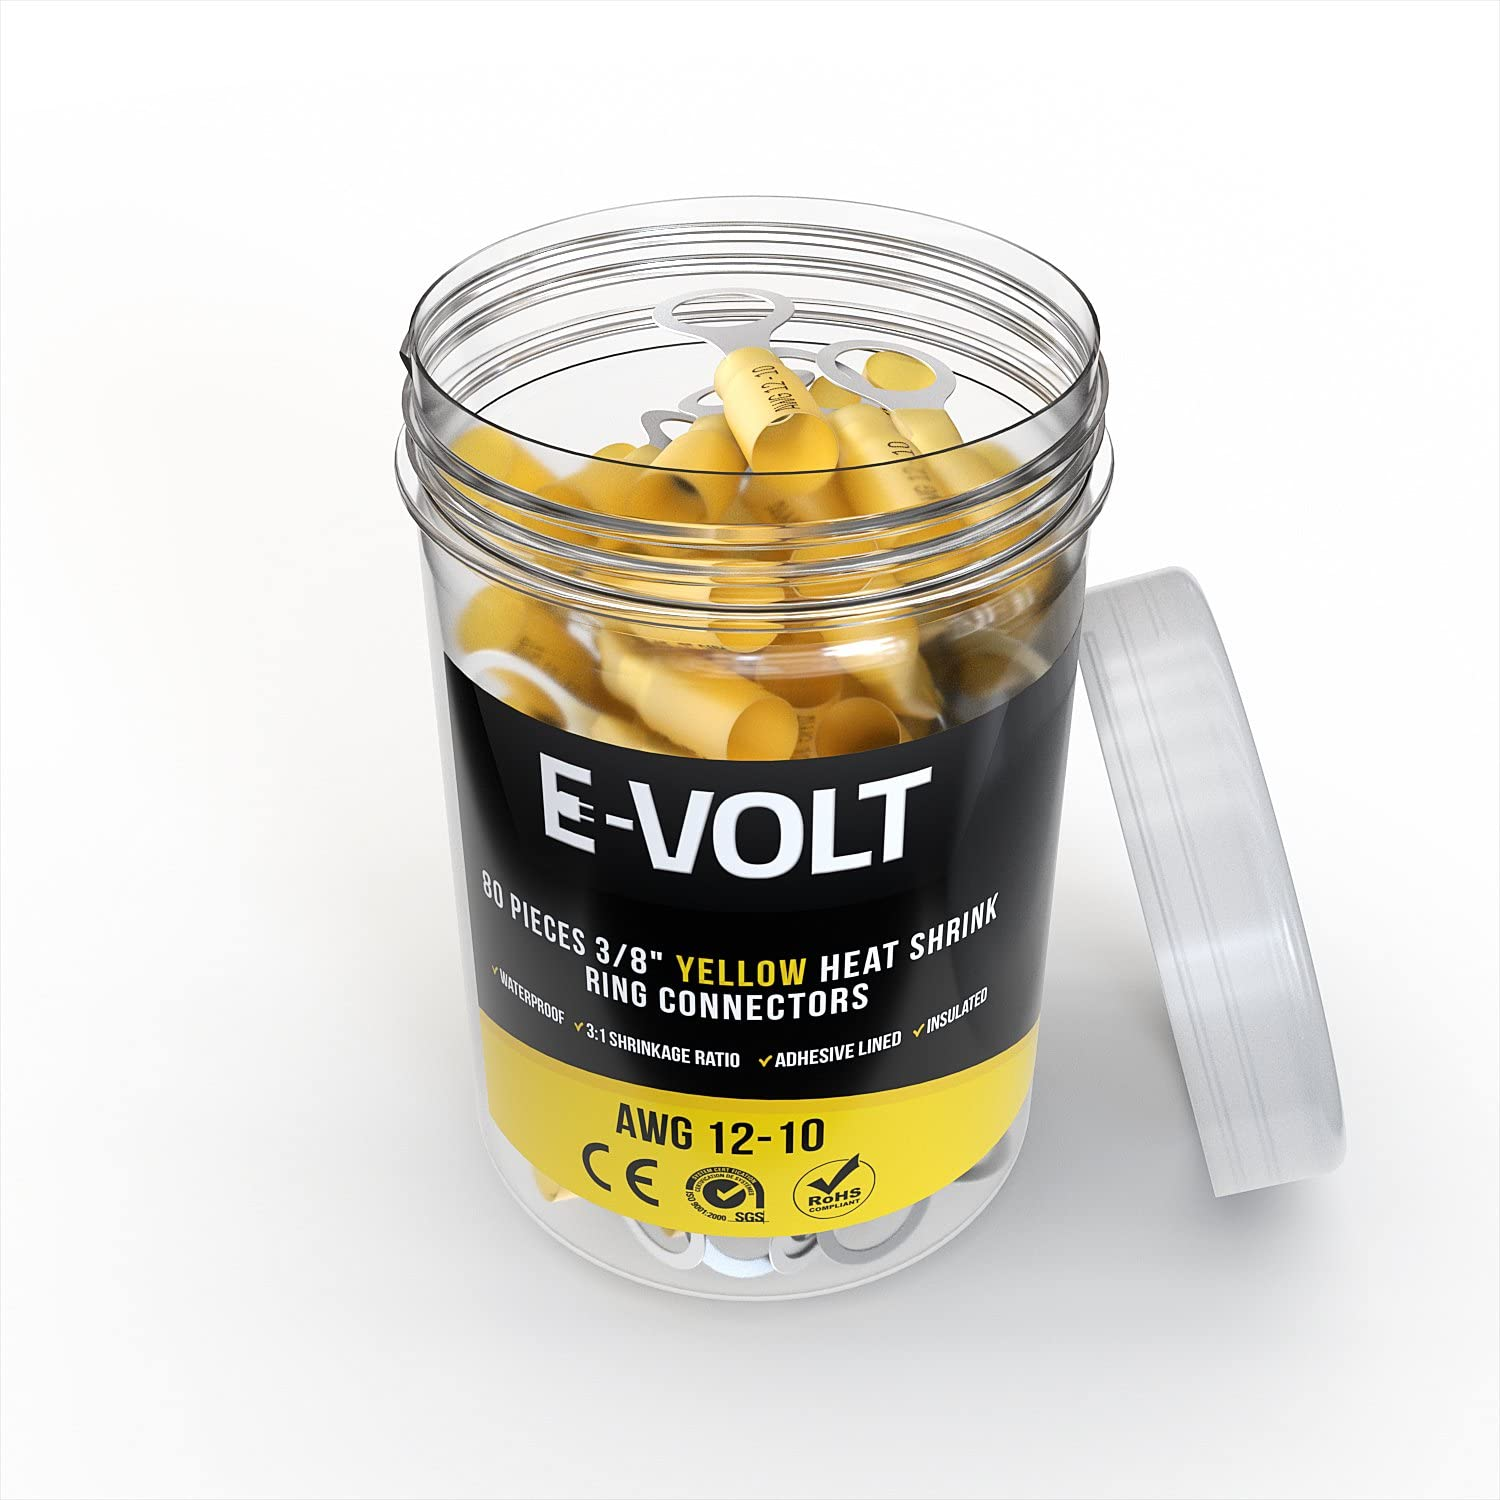 E-VOLT 80 PC Yellow Heat Shrink Ring Crimp Connectors: Sizes: #10 Marine 3//8 Audio Insulated 12-10 AWG Automotive Gauge 12 10 Bulk Electrical Terminals 1//4 5//16 Industrial